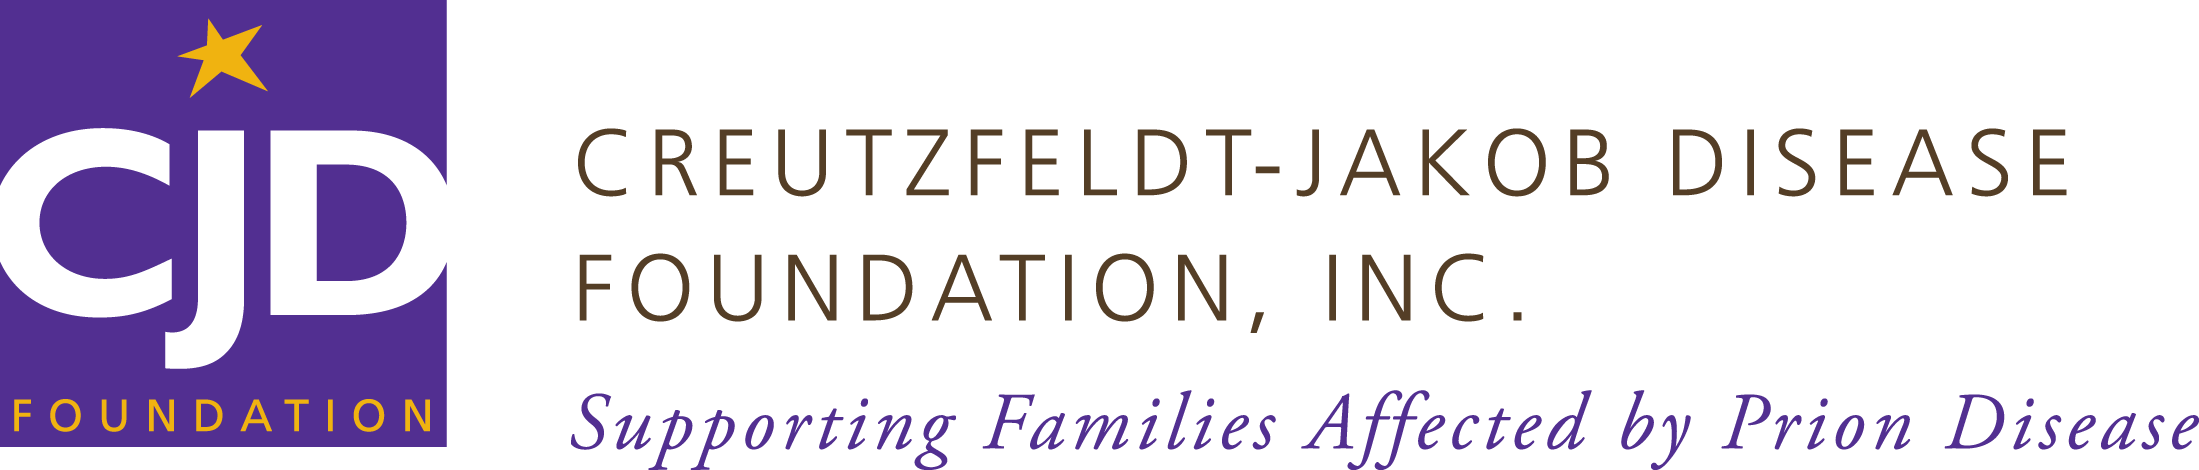 Creutzfeldt-Jakob Disease Foundation